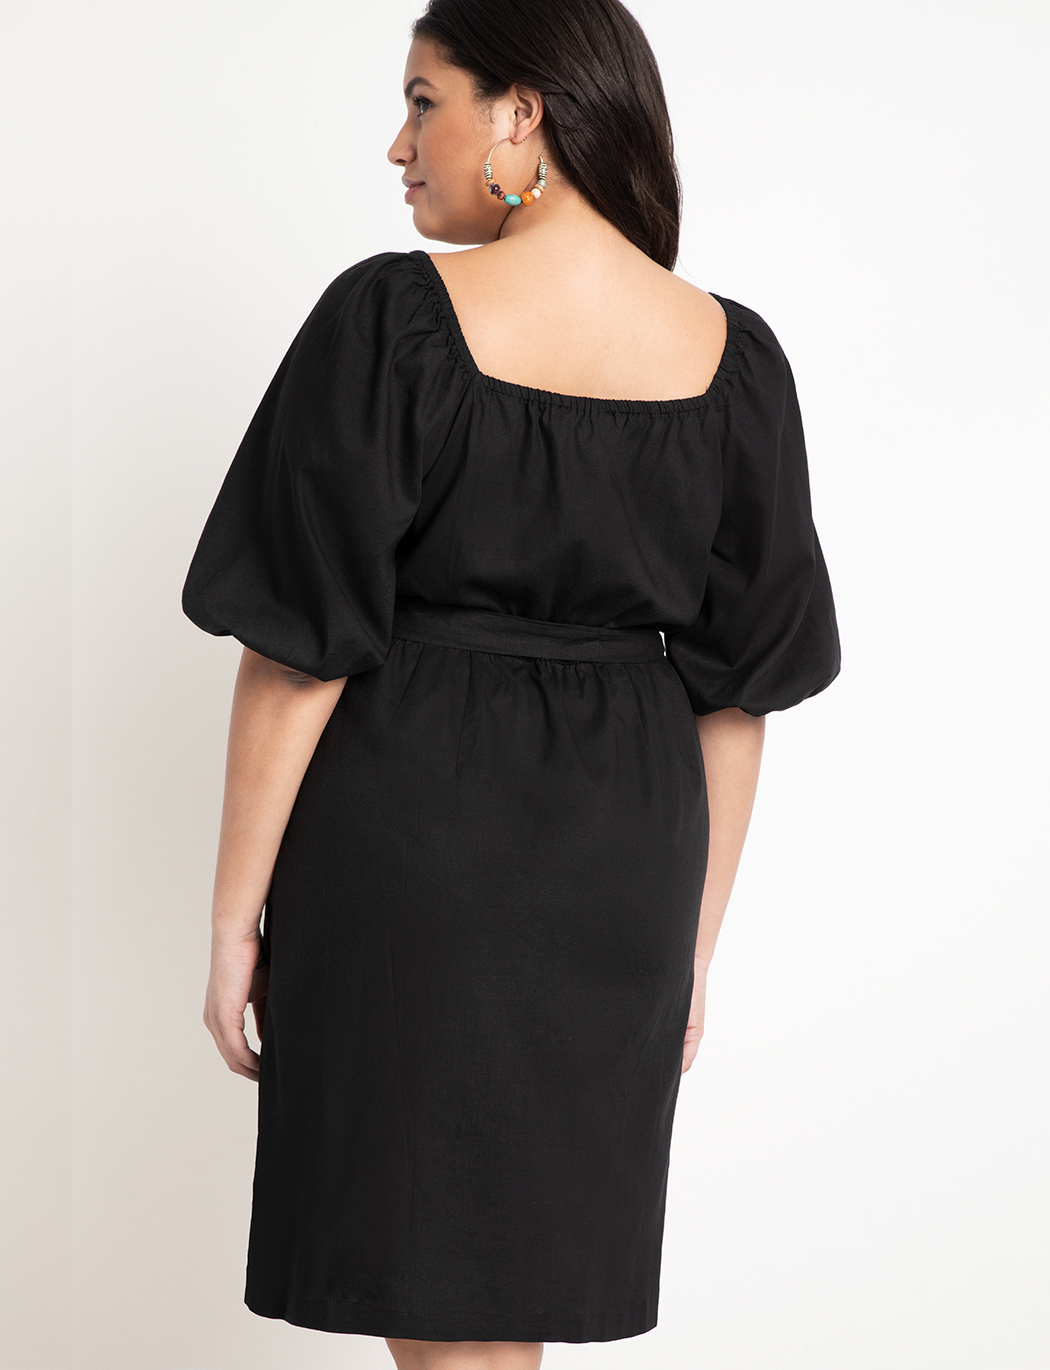 Optional Off-the-Shoulder Wrap Dress